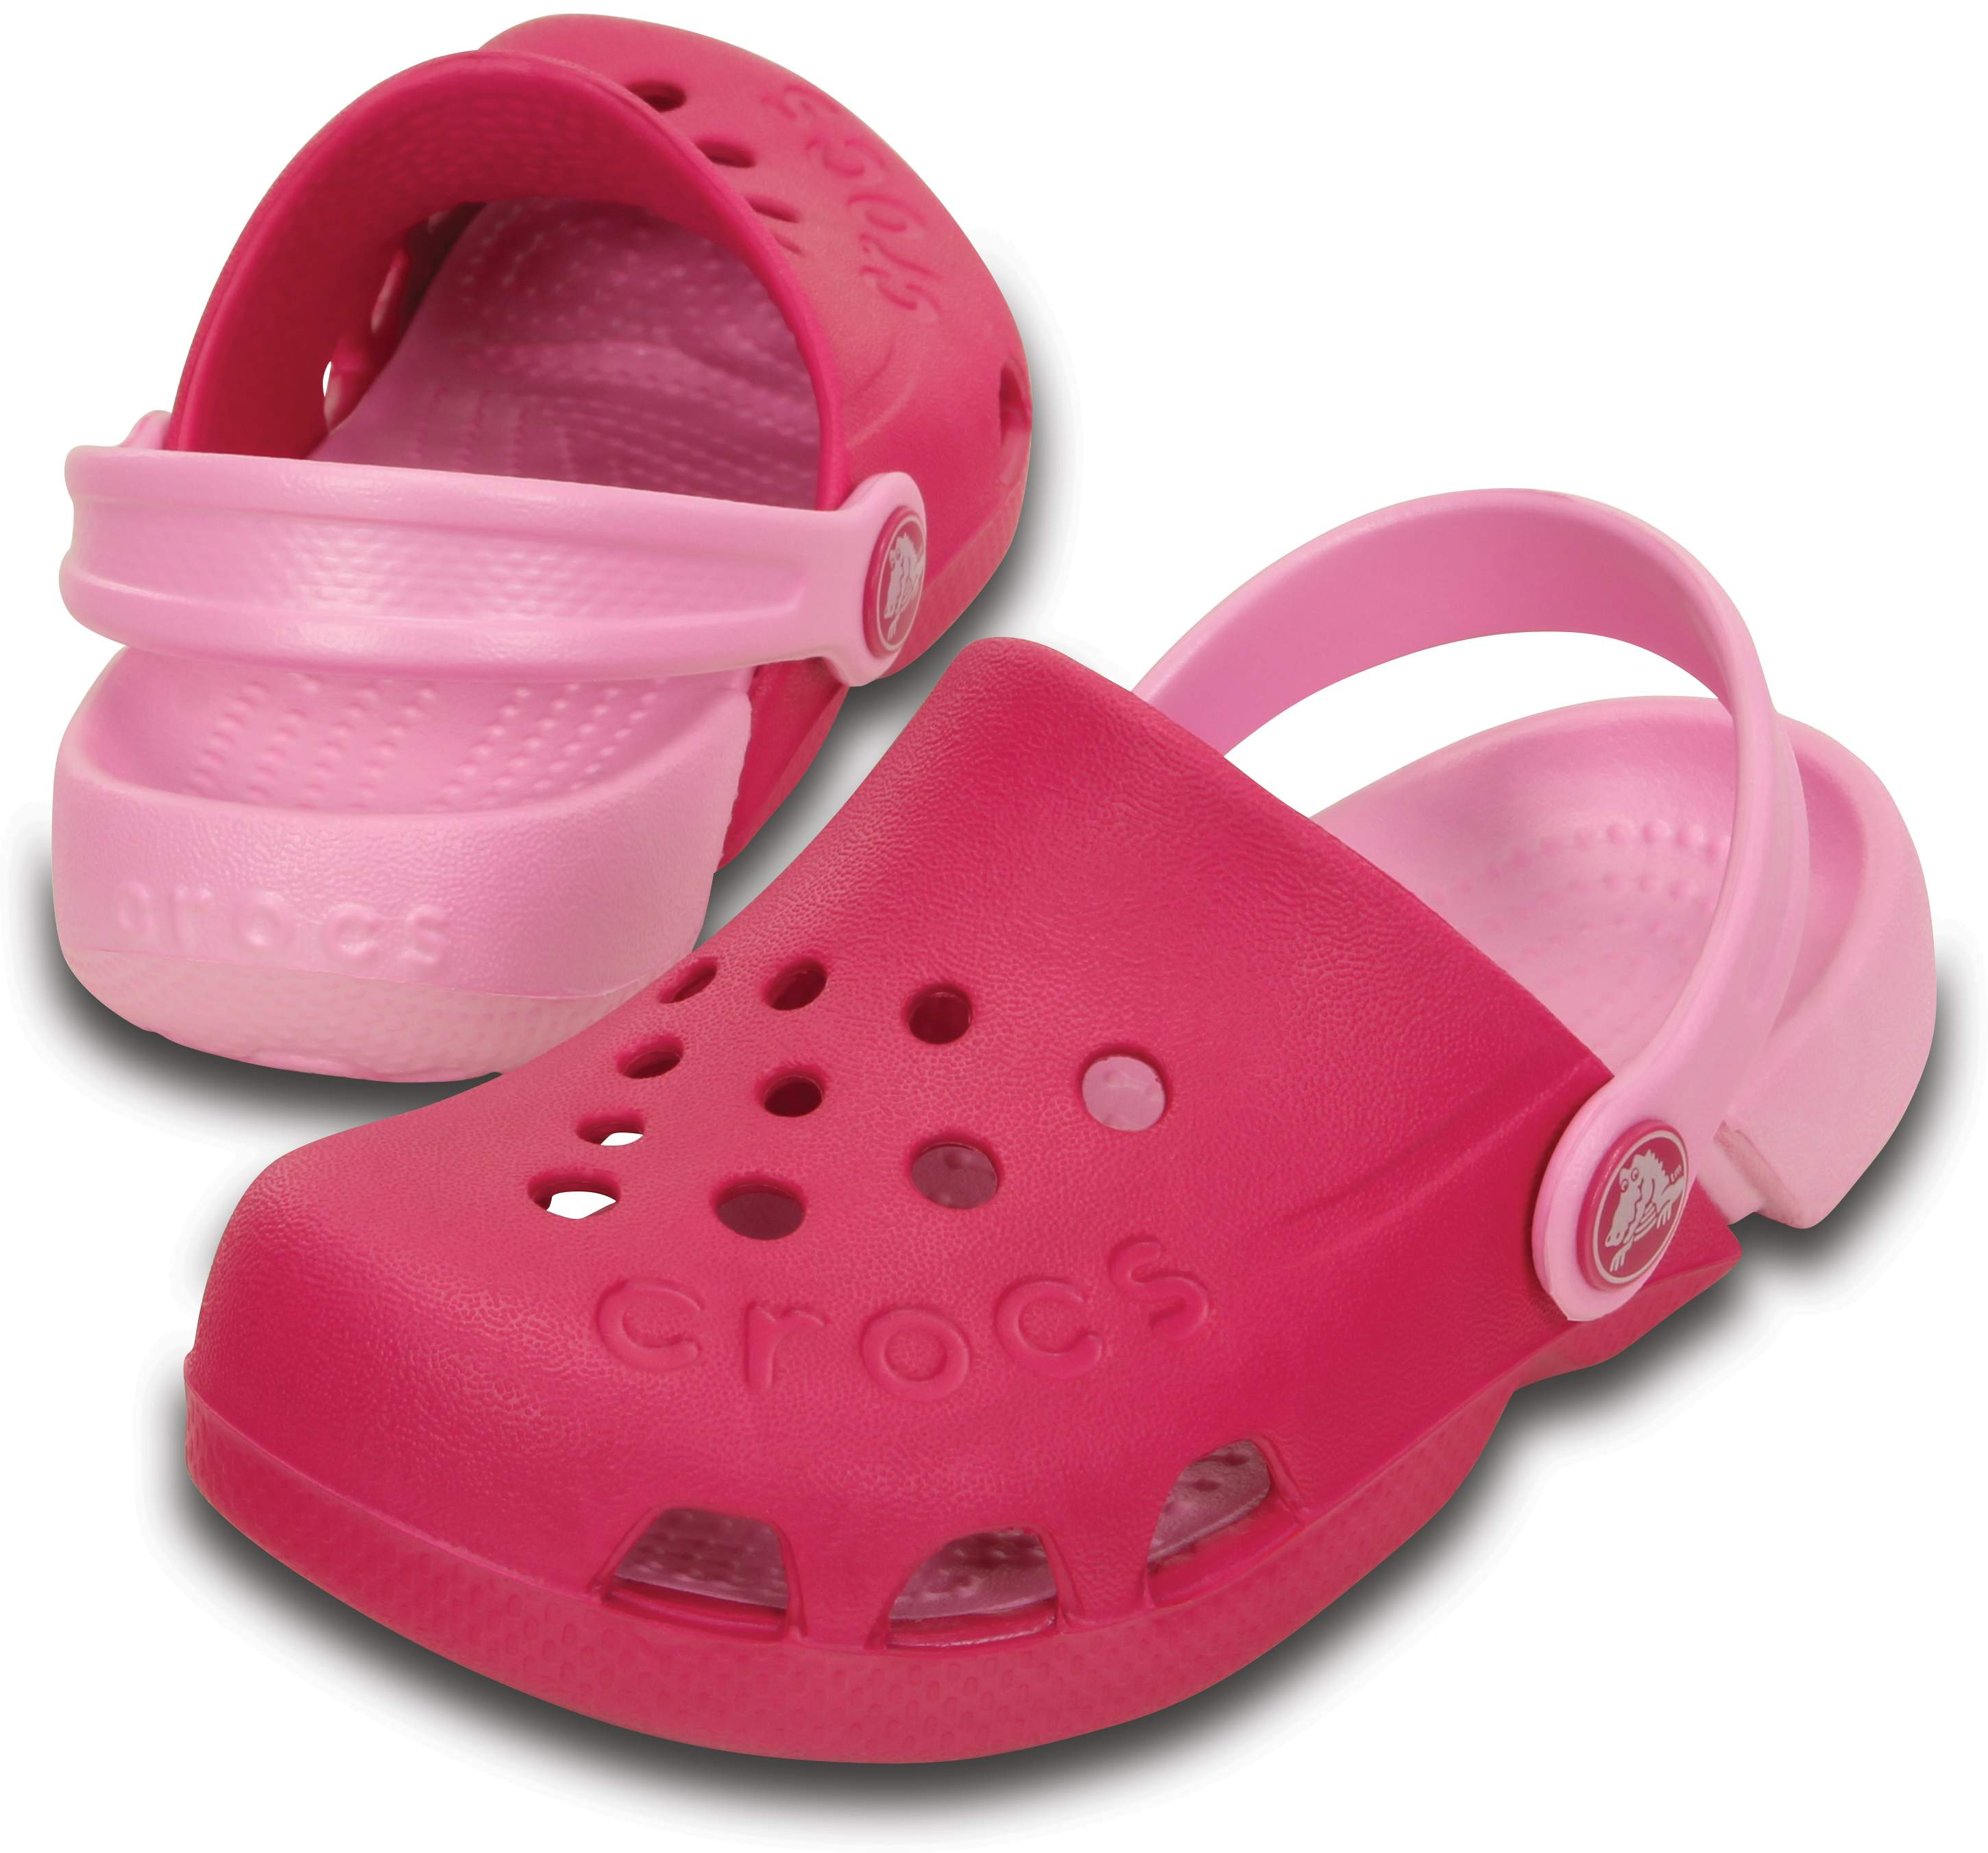 Crocs Baby Electro Clogs Shoes Mules Slippers Sandals Slip On Colour Contrasting